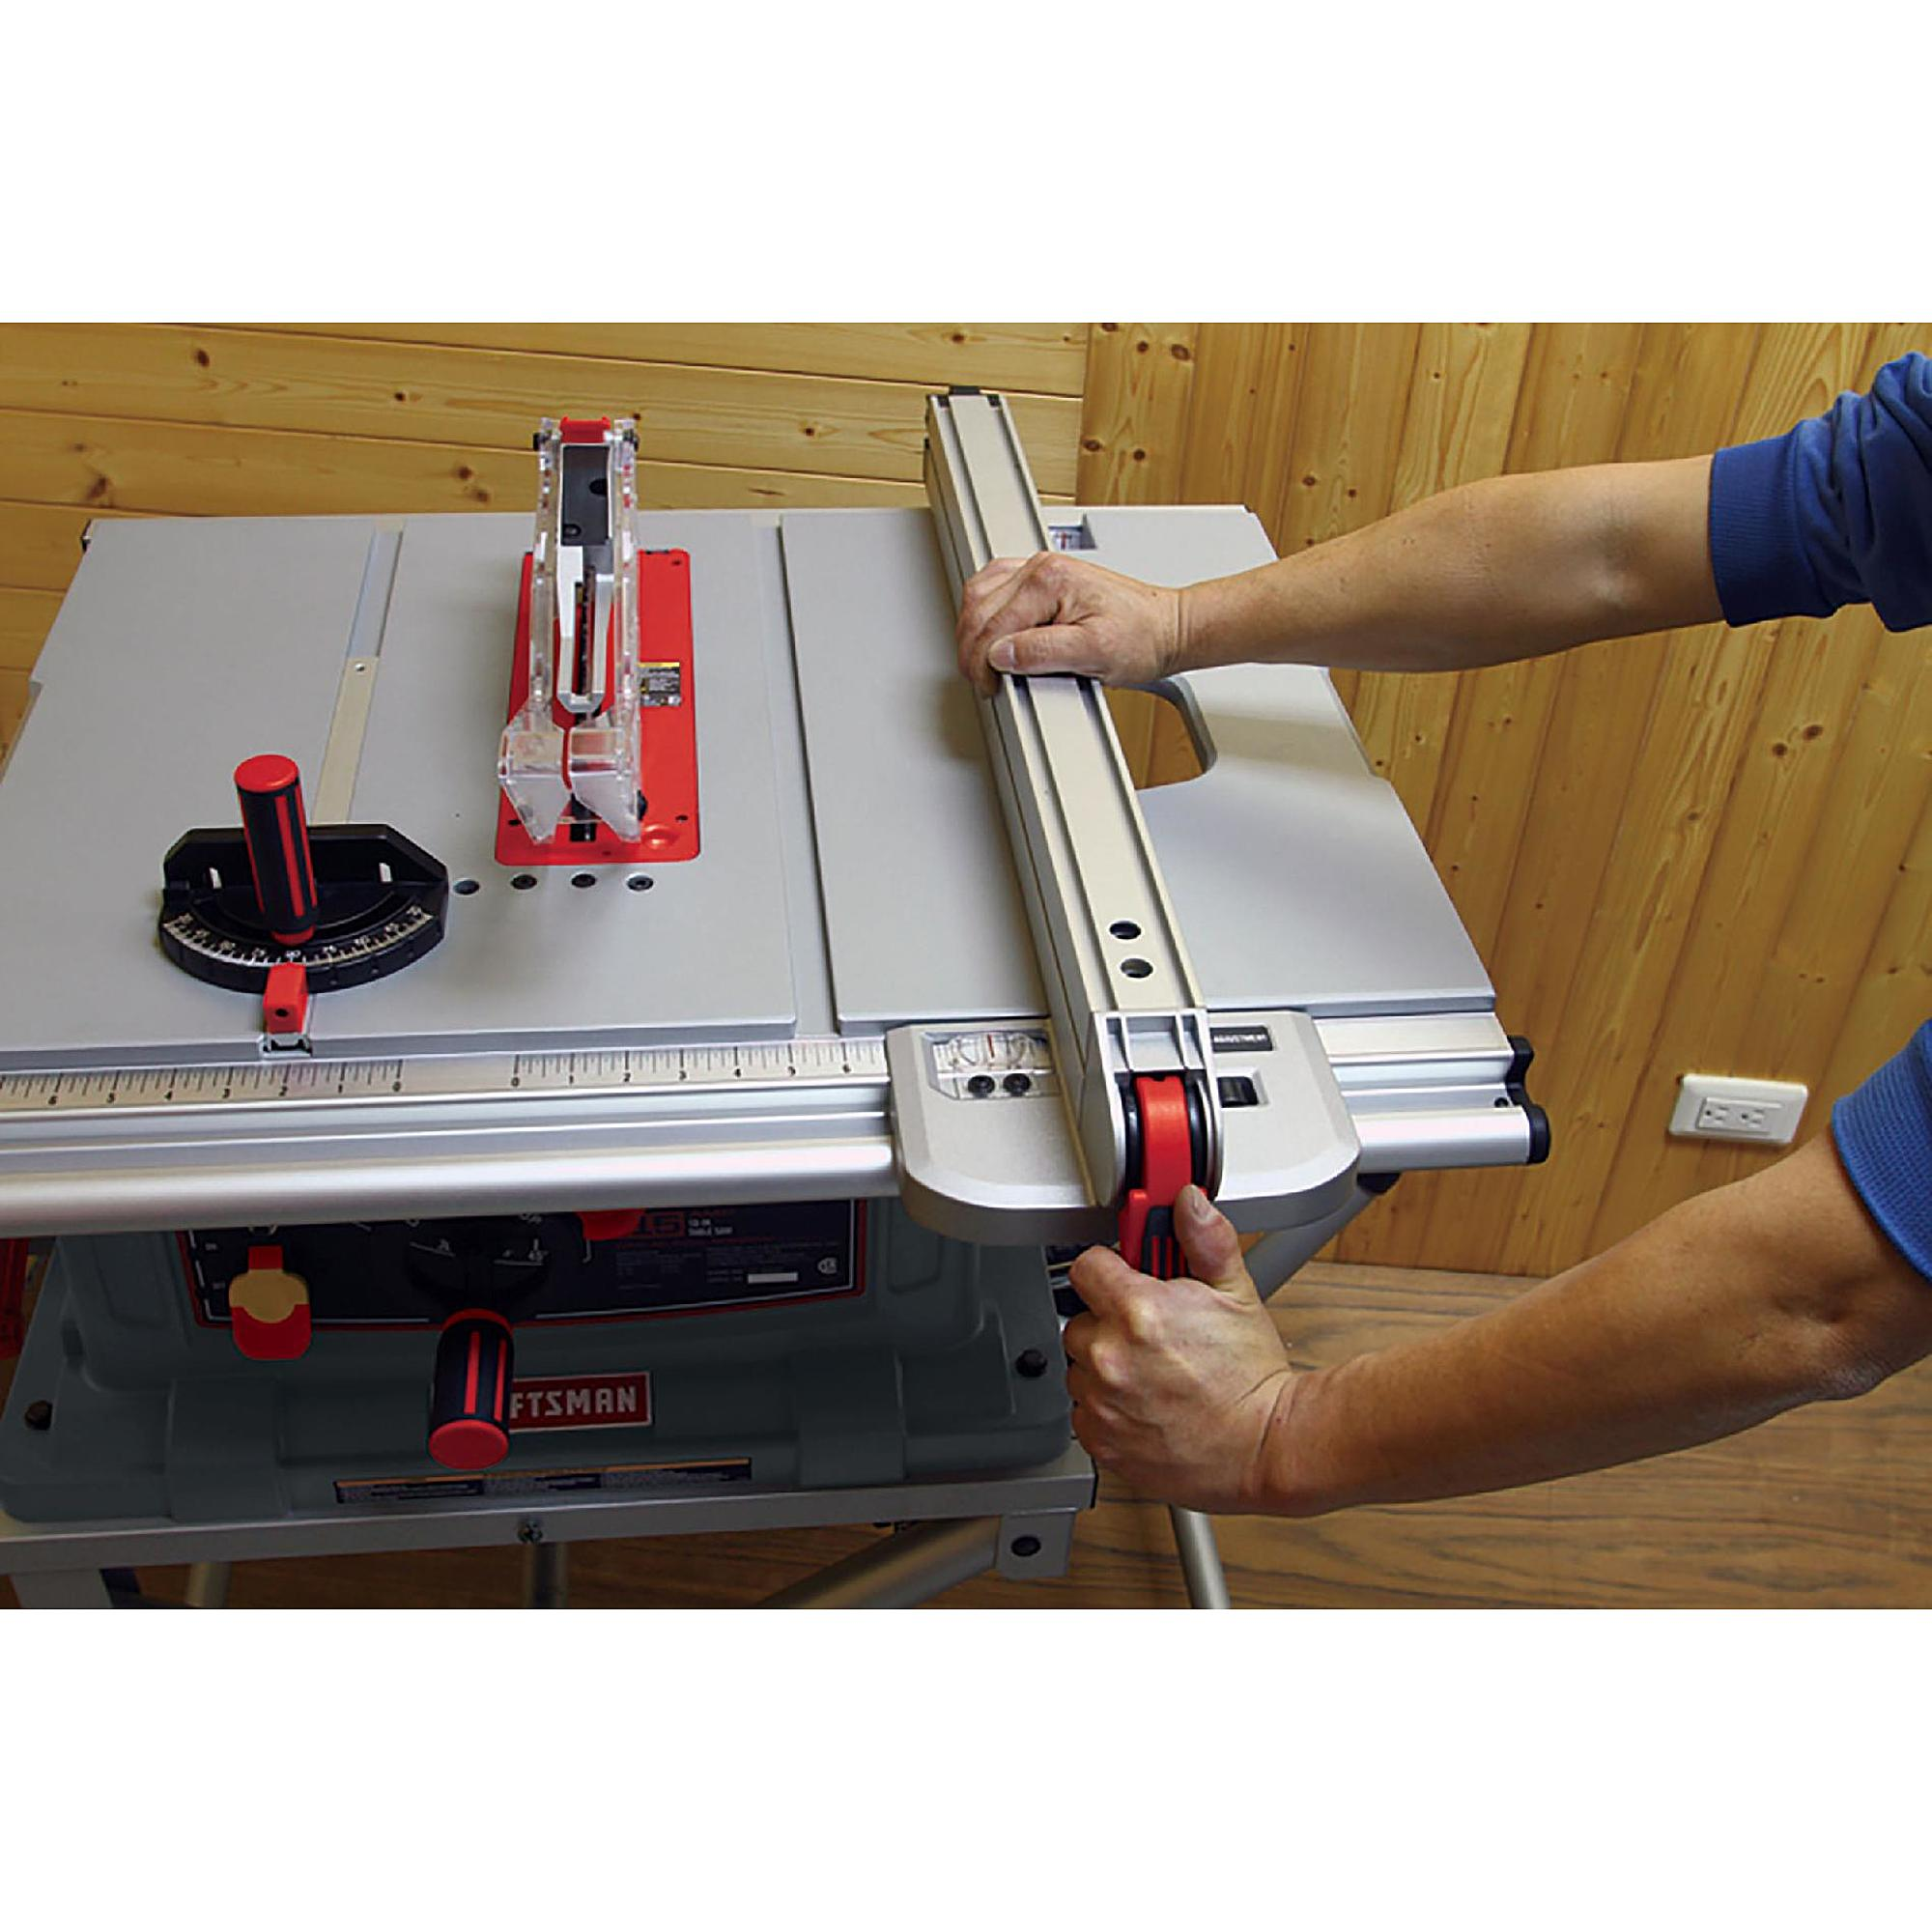 Looking for Craftsman model 315218290 table saw repair